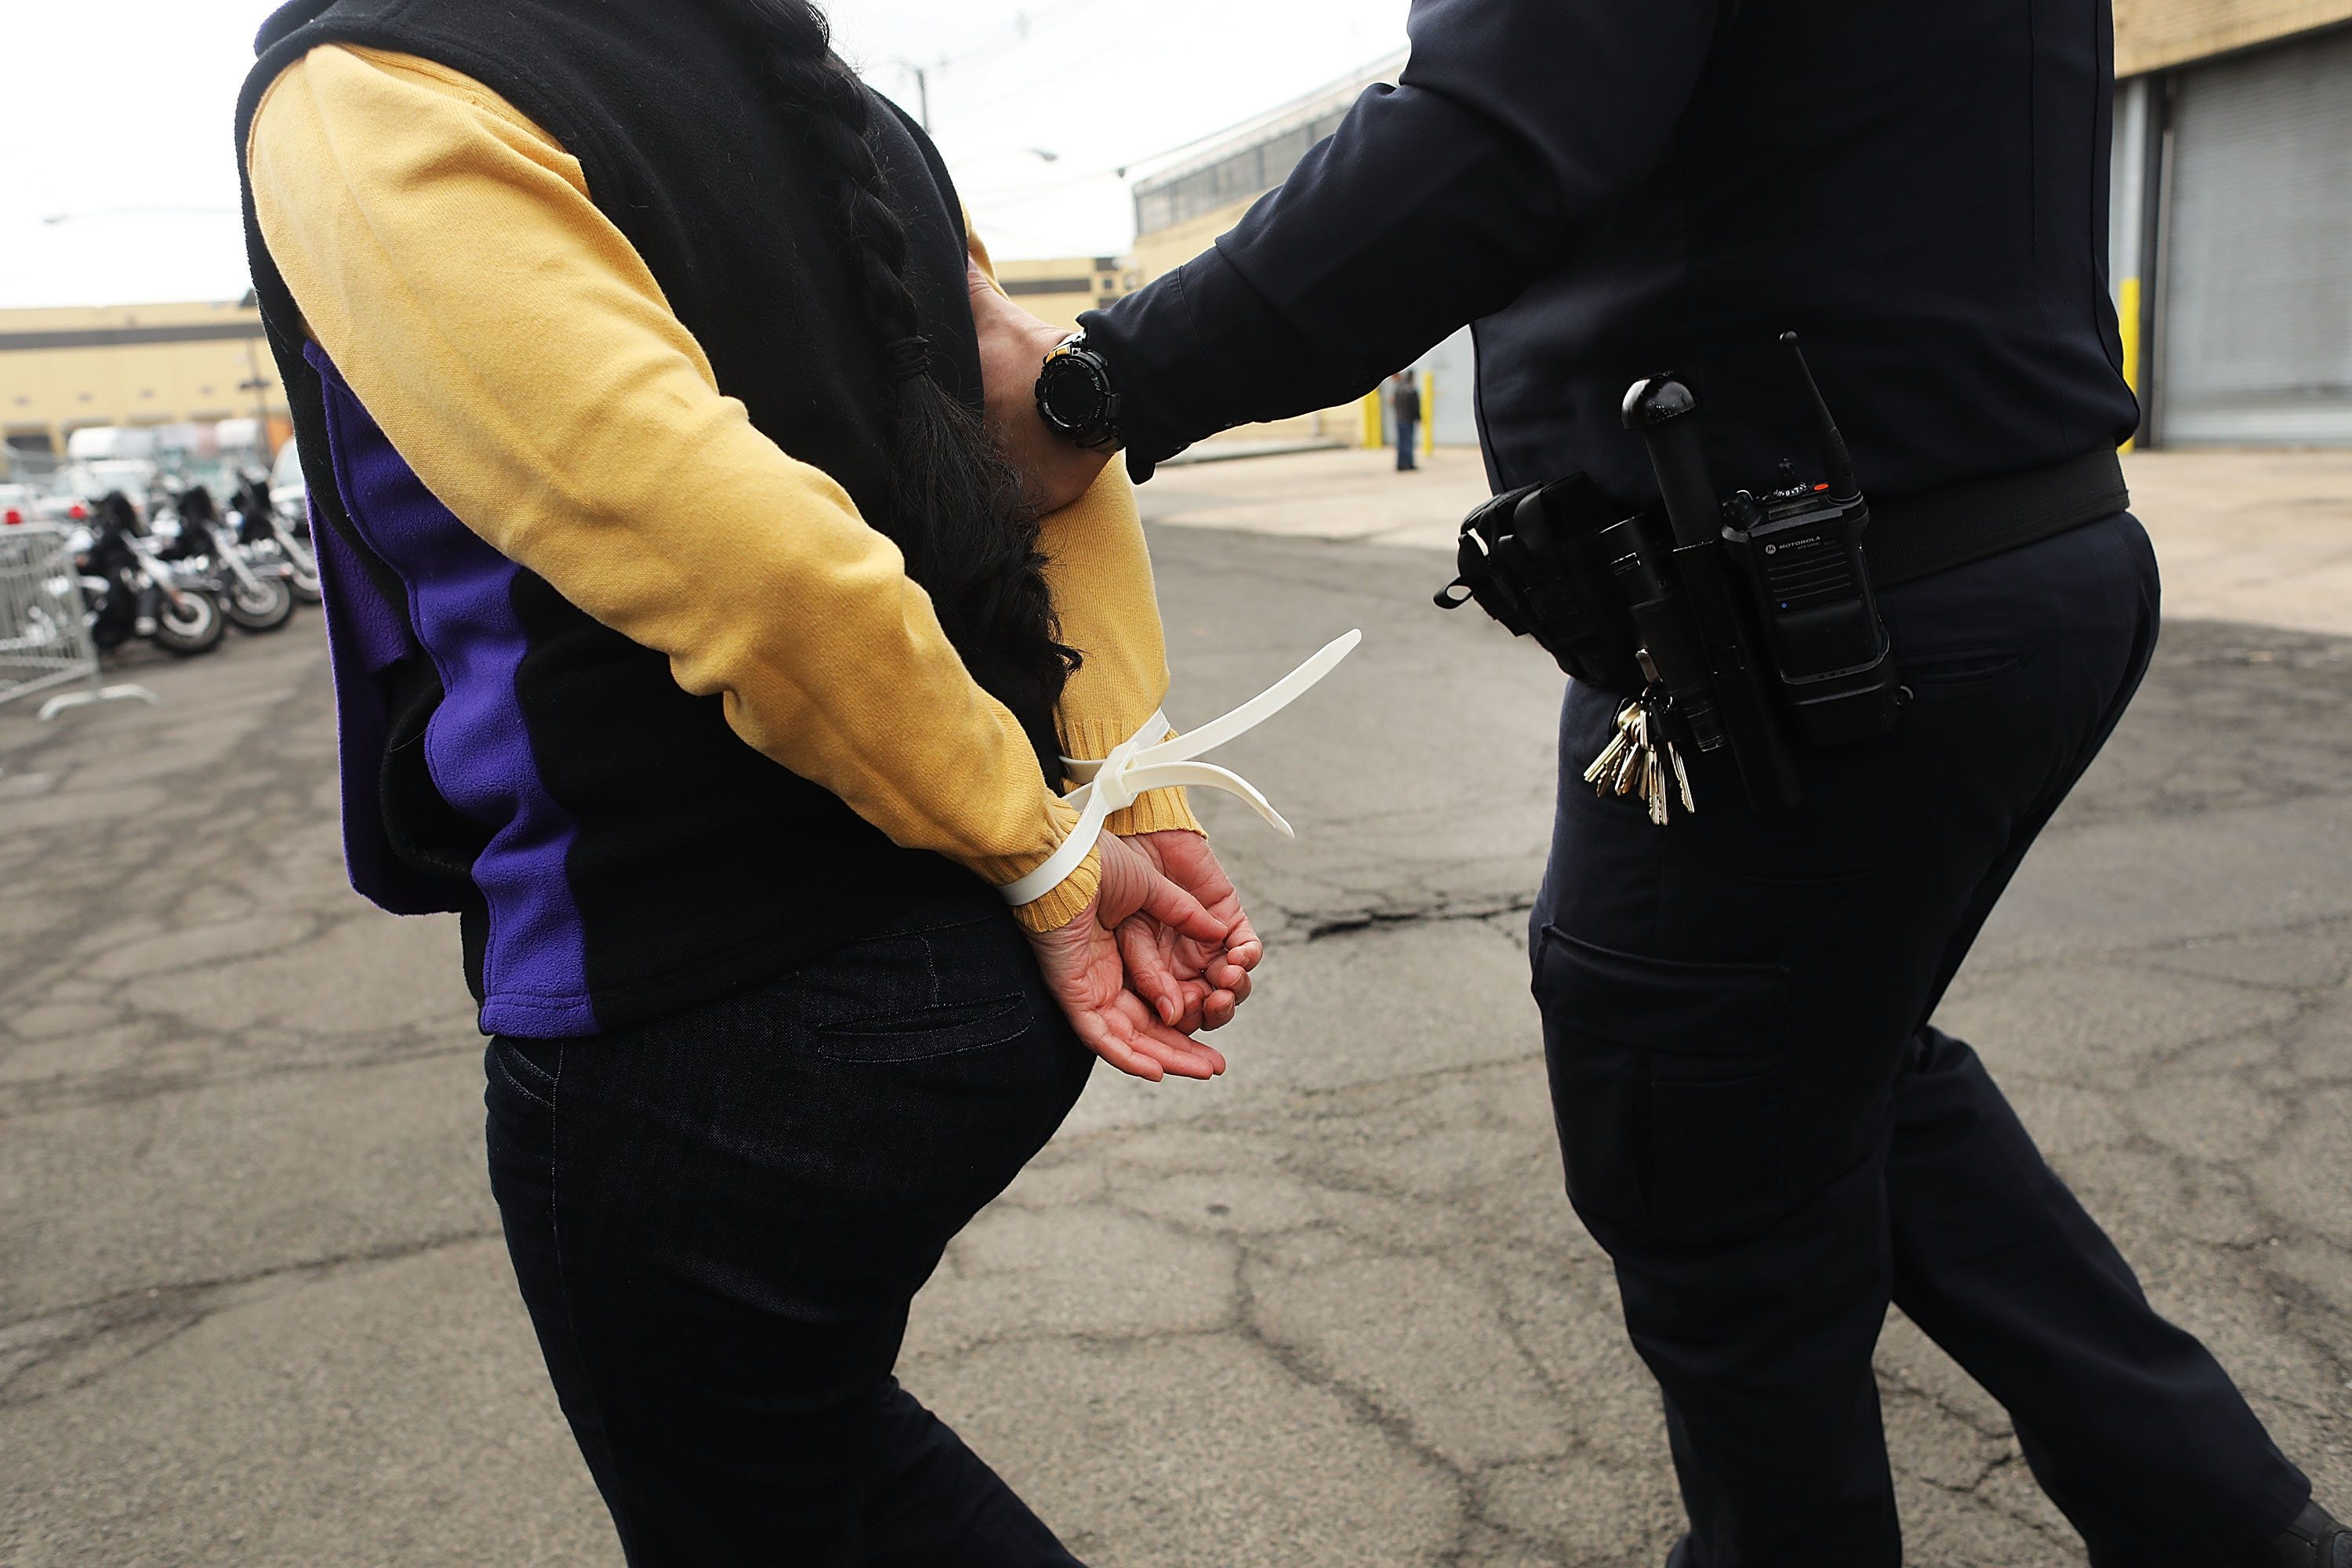 ELIZABETH, NJ - FEBRUARY 23:  Police arrest a protester outside of the Elizabeth Detention Center during a rally attended by immigrant residents and activists on February 23, 2017 in Elizabeth, New Jersey. Over 100 demonstrators chanted and held up signs outside of the center which is currently holding people awaiting deportation. The demonstrators denounced President Donald Trump and his deportation policies. Around the country stories of Immigration and Customs Enforcement (ICE) raids have sent fear through immigrant communities.  (Photo by Spencer Platt/Getty Images)